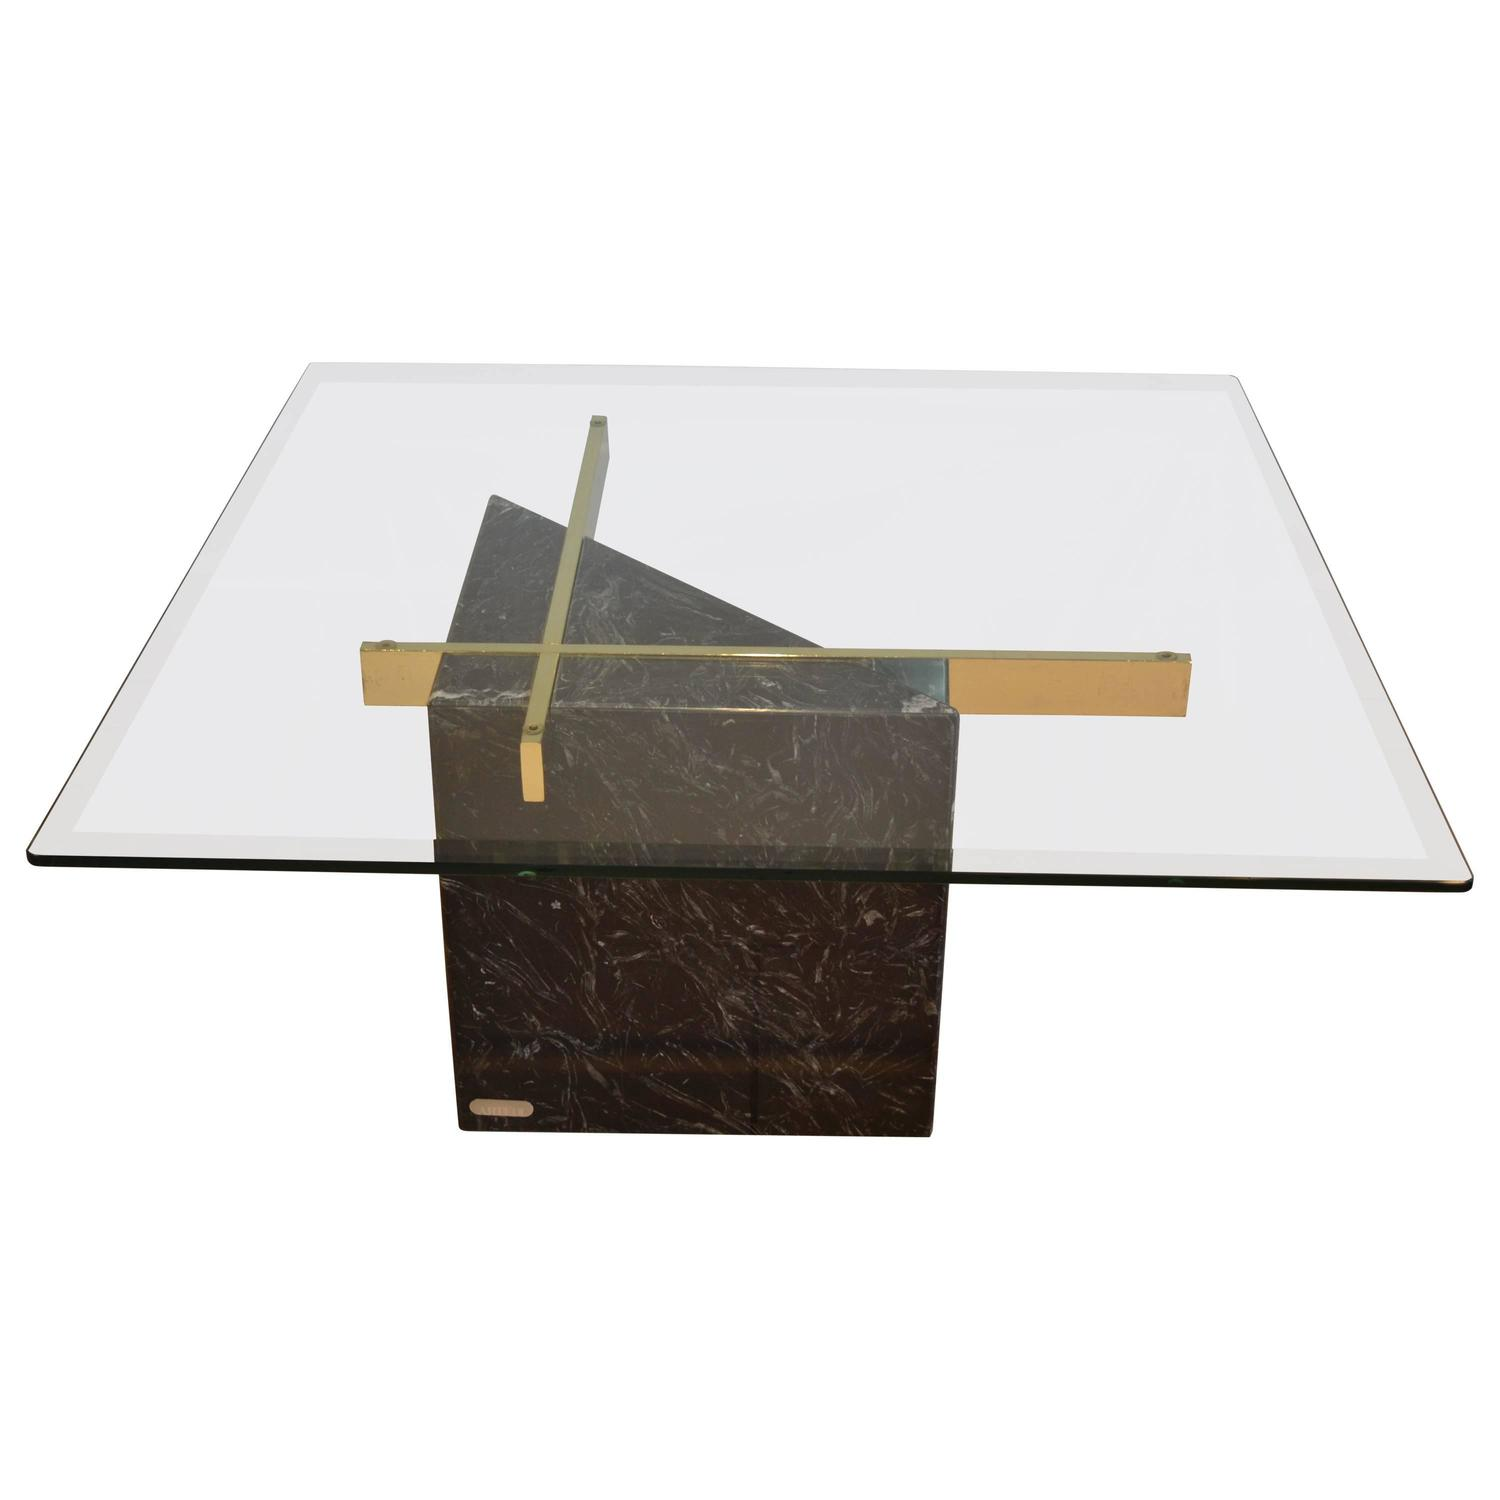 Marble Glass Top Coffee Table: Black Marquina Marble Base And Glass Top Coffee Table By